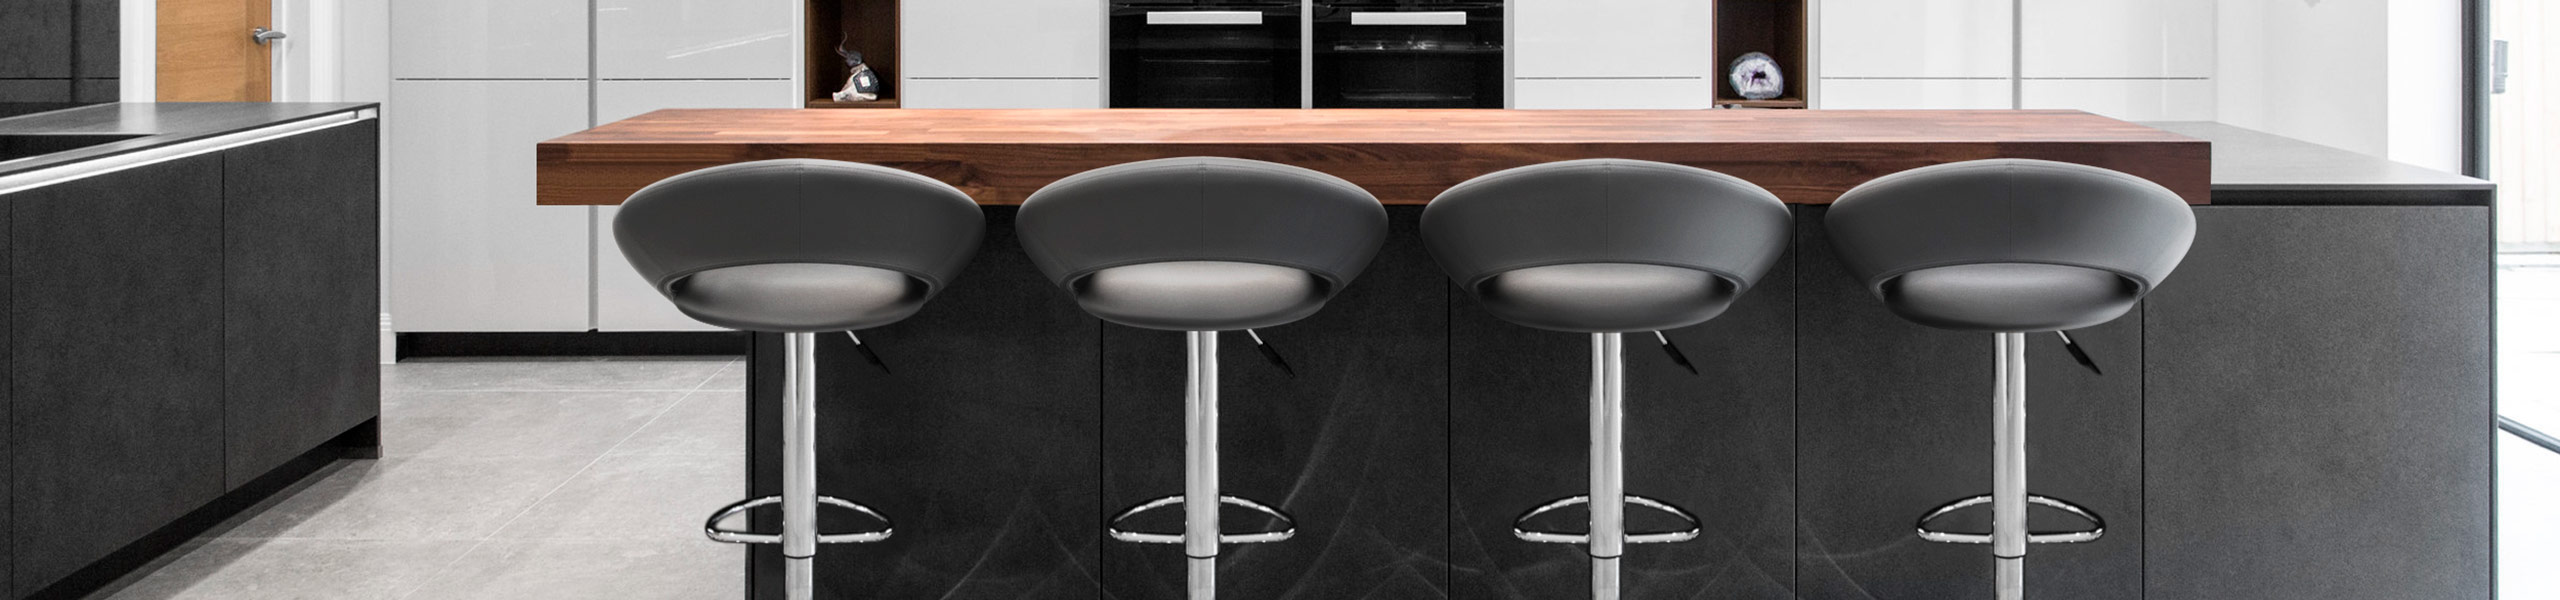 Padded Crescent Bar Stool Grey Video Banner